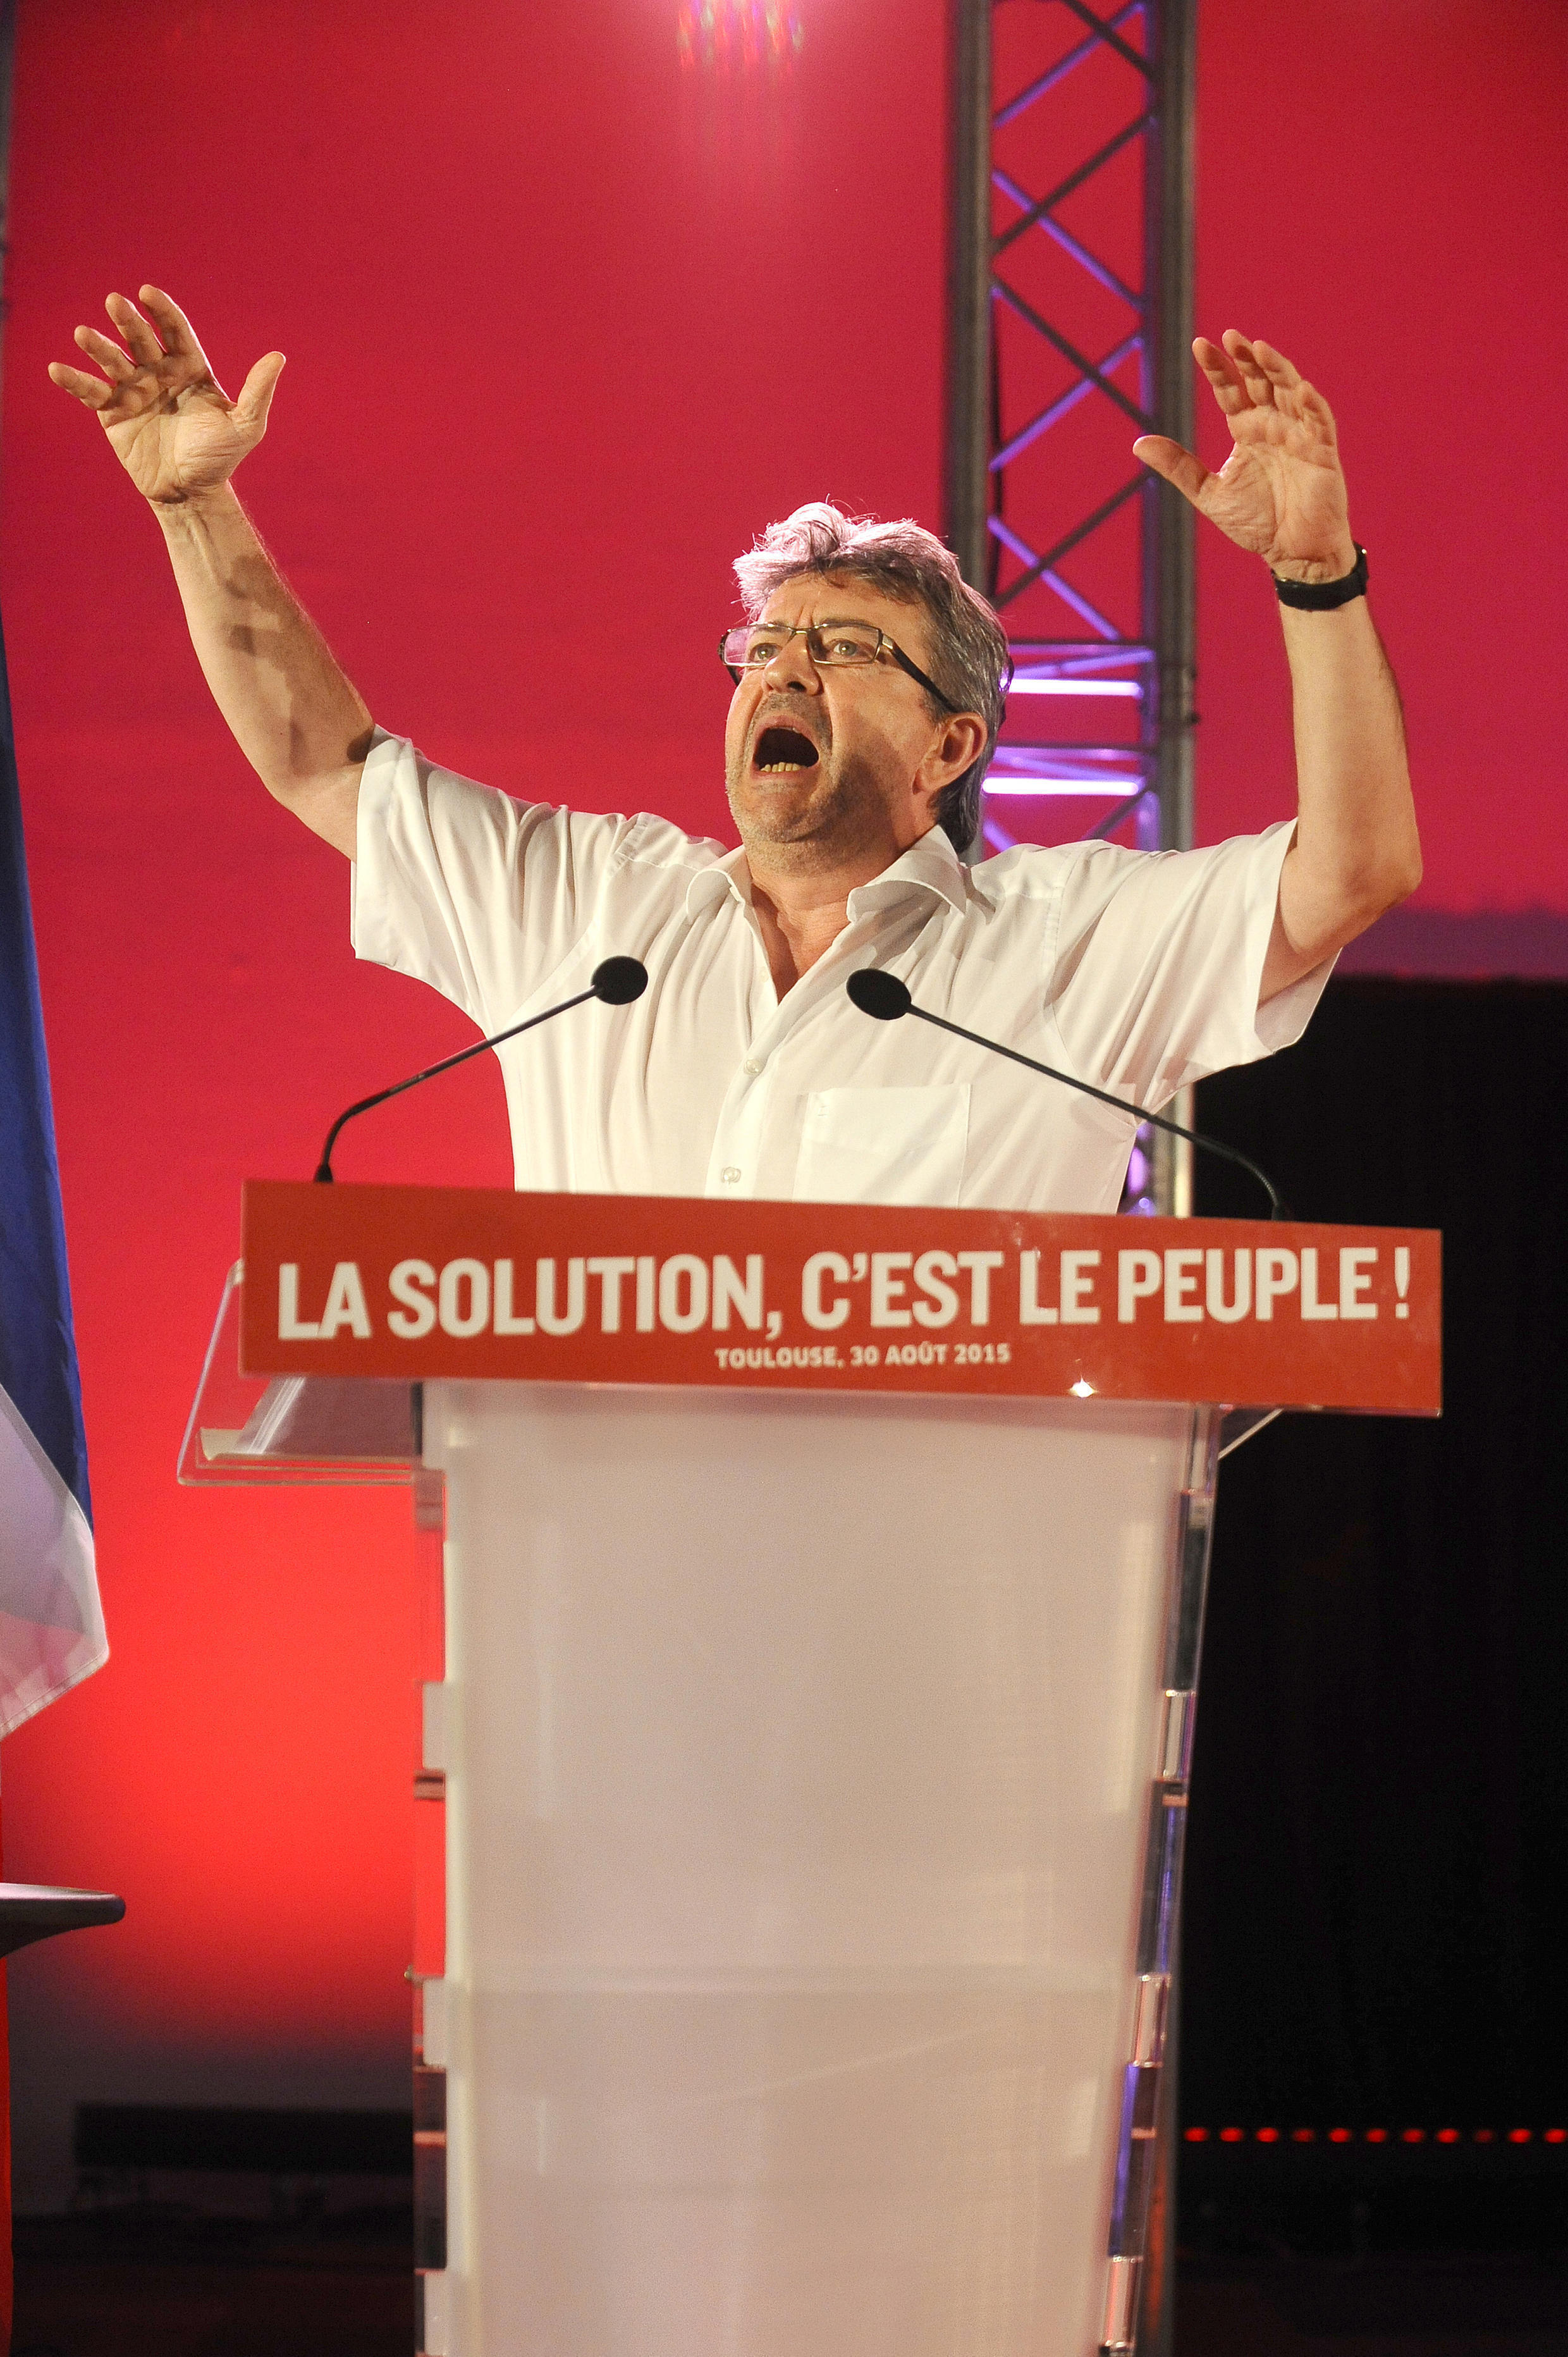 French member of the European parliament and Left Front (Front de Gauche, FG) President Jean-Luc Melenchon gestures as he delivers a speech during the Left Party (Parti de Gauche, PG) summer university in Toulouse on August 30, 2015